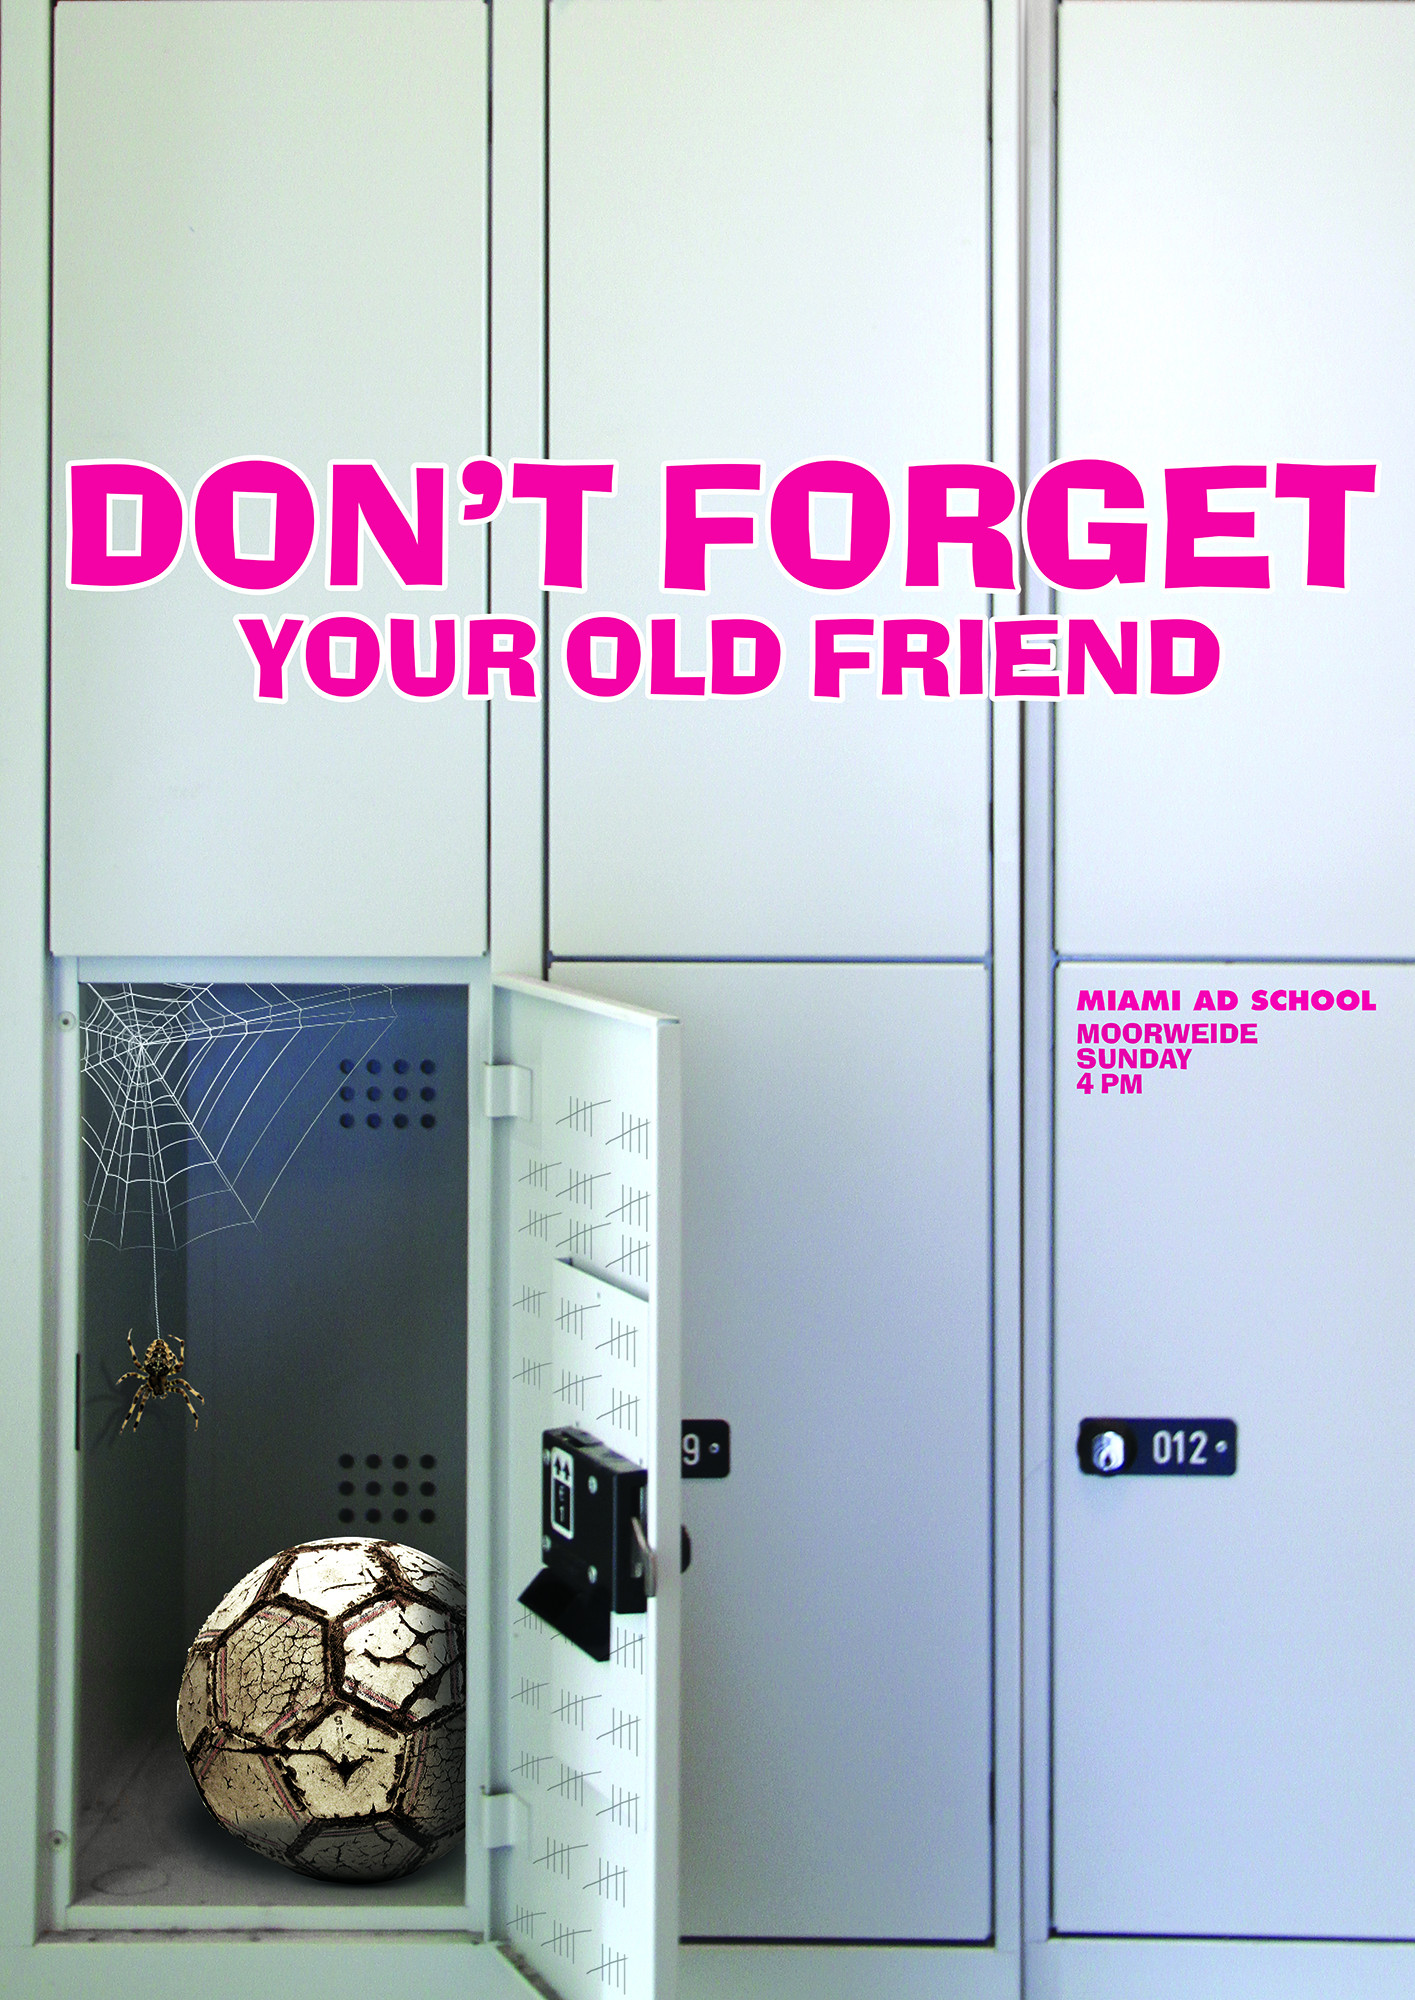 Don't forget your old friend